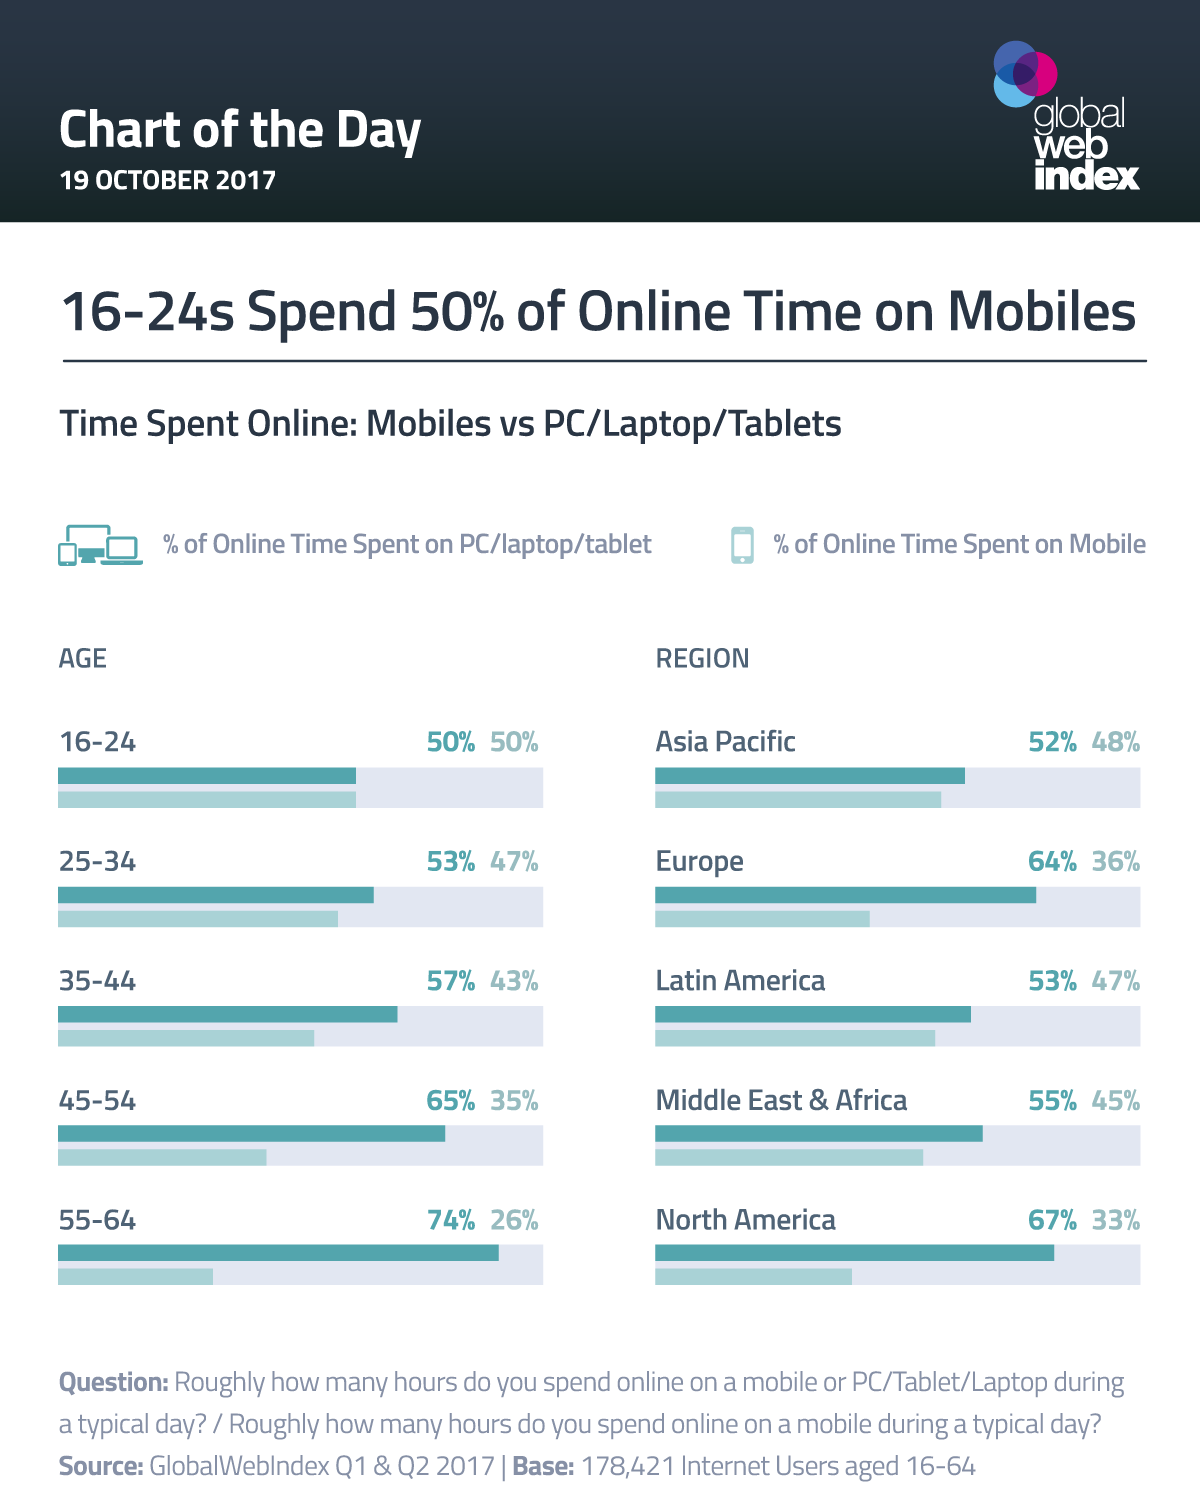 16-24s Spend 50% of Online Time on Mobiles